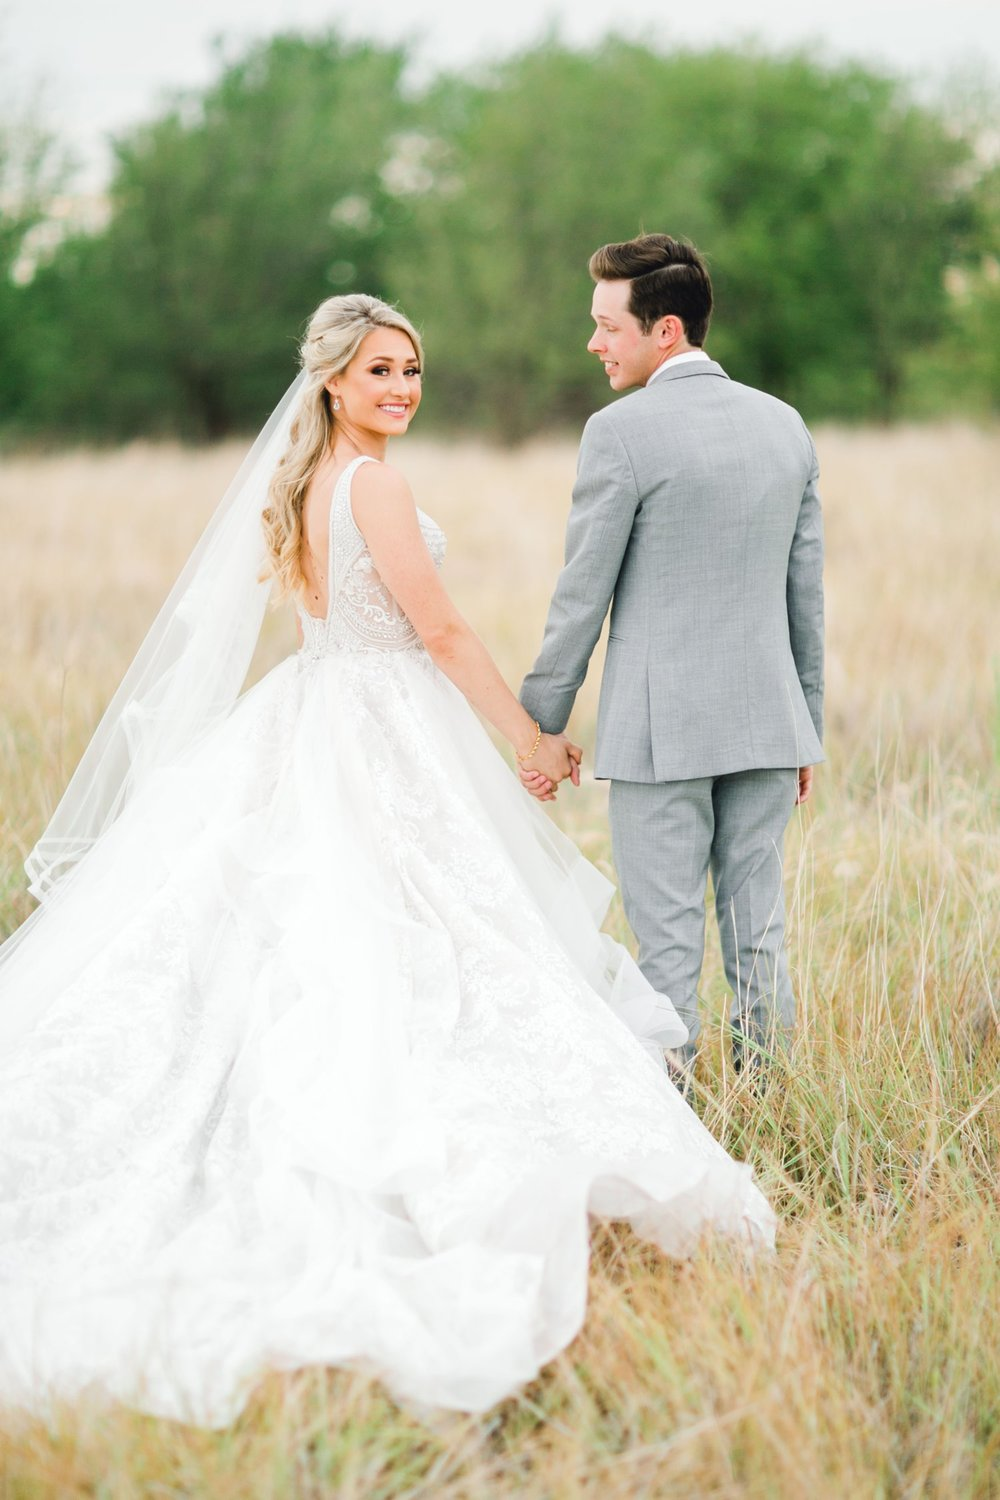 KAITLYN_AND_ZACHARY_HUNT_ALLEEJ_LUBBOCK_WEDDING_PHOTOGRAPHER_EBERLEY_BROOKS_EVENTS_0145.jpg